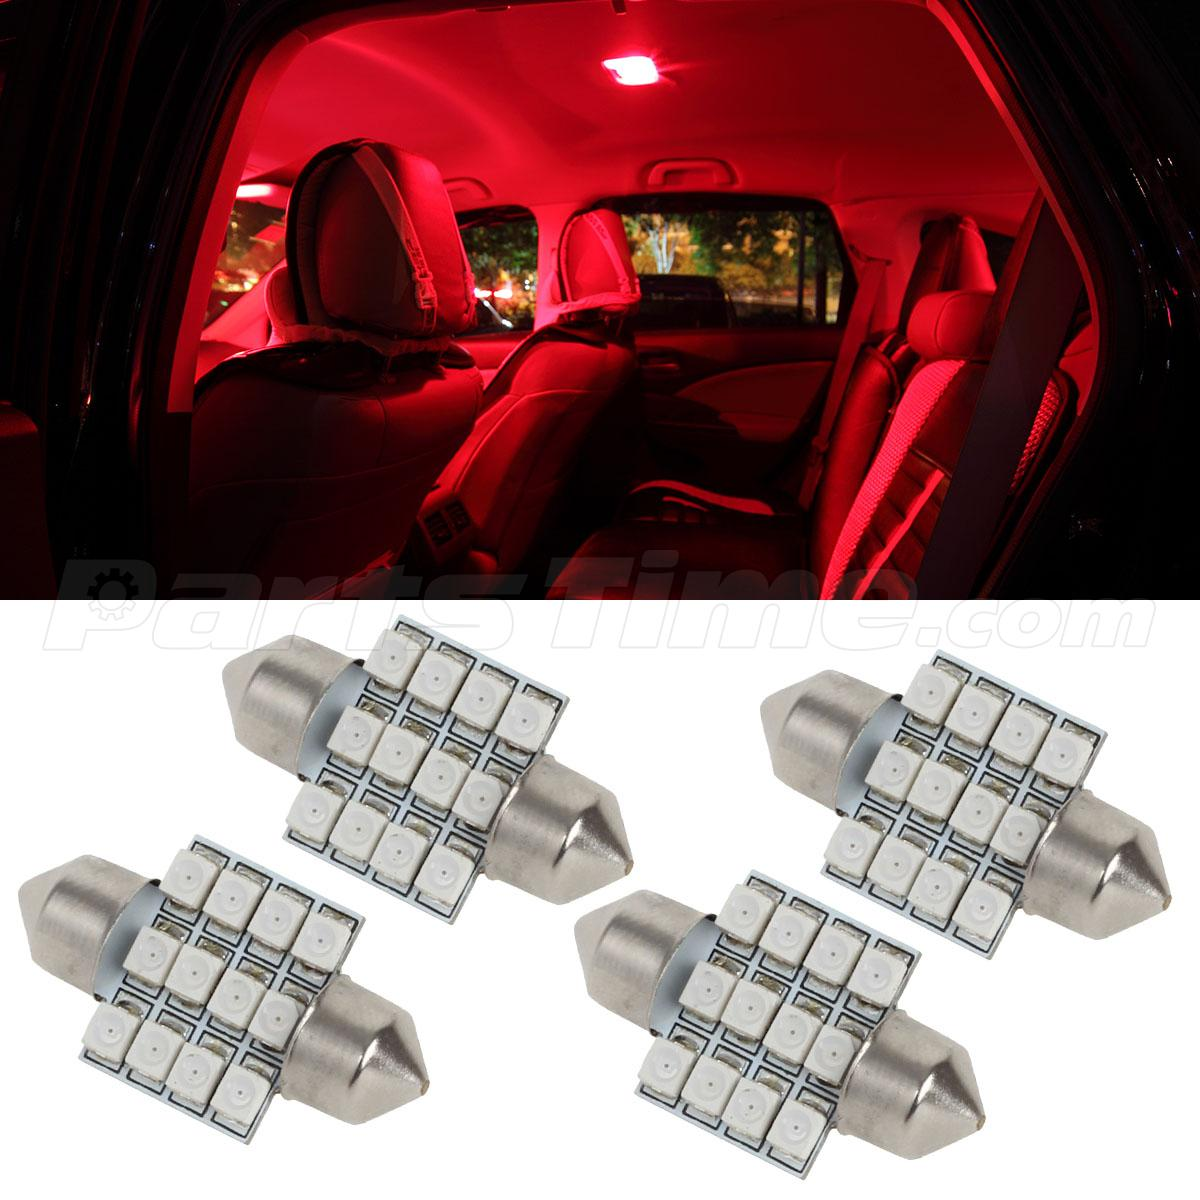 4x red 12 smd 31mm festoon car interior dome map lights 6418 12v ebay. Black Bedroom Furniture Sets. Home Design Ideas